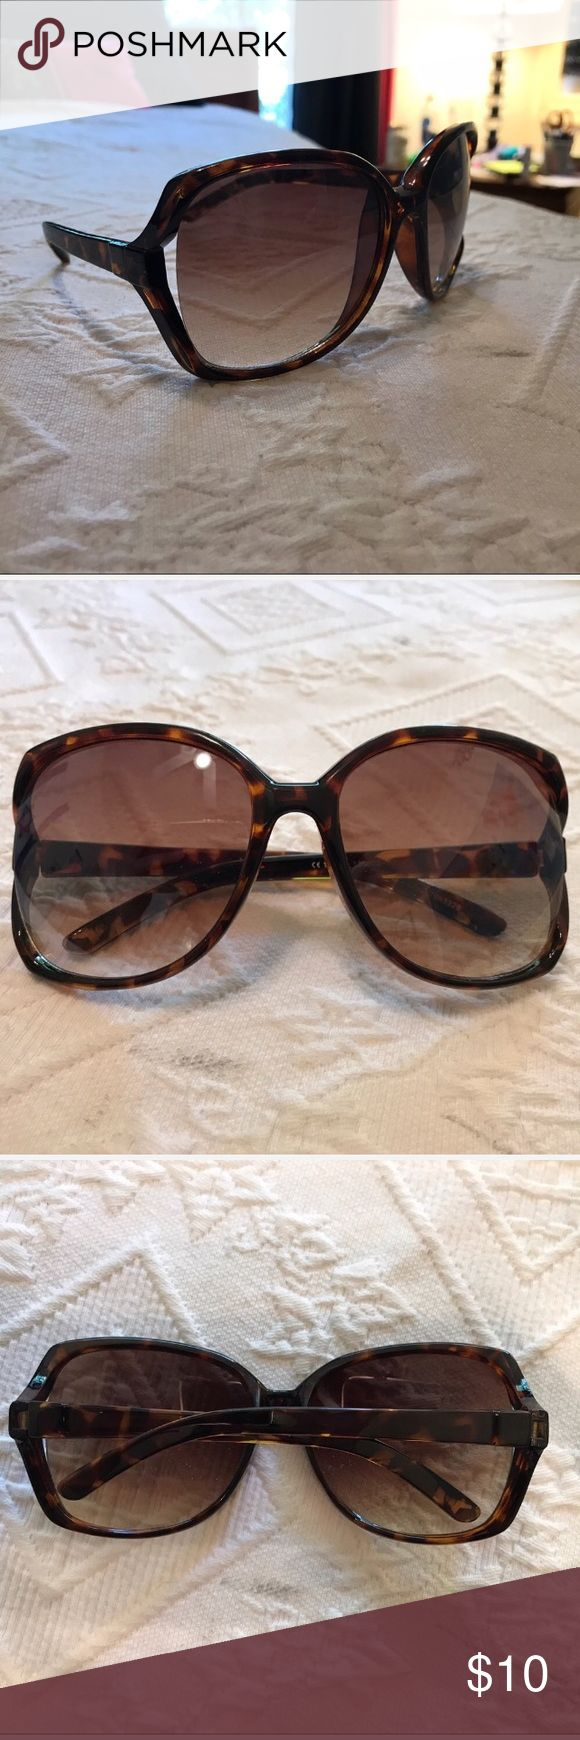 💛LIGHTLY TINTED SUNGLASSES Super cute big sunglasses, lightly tinted and stylish. Fit wonderfully and only worn once.  💖Five star seller!  ❤️Same day shipping!  💛Feel free to ask questions! 💚Make an offer! 💙Bundle and I'll shoot you an offer! 💜Discounts for bundles! 🖤Free stickers/gifts with every purchase! Accessories Sunglasses